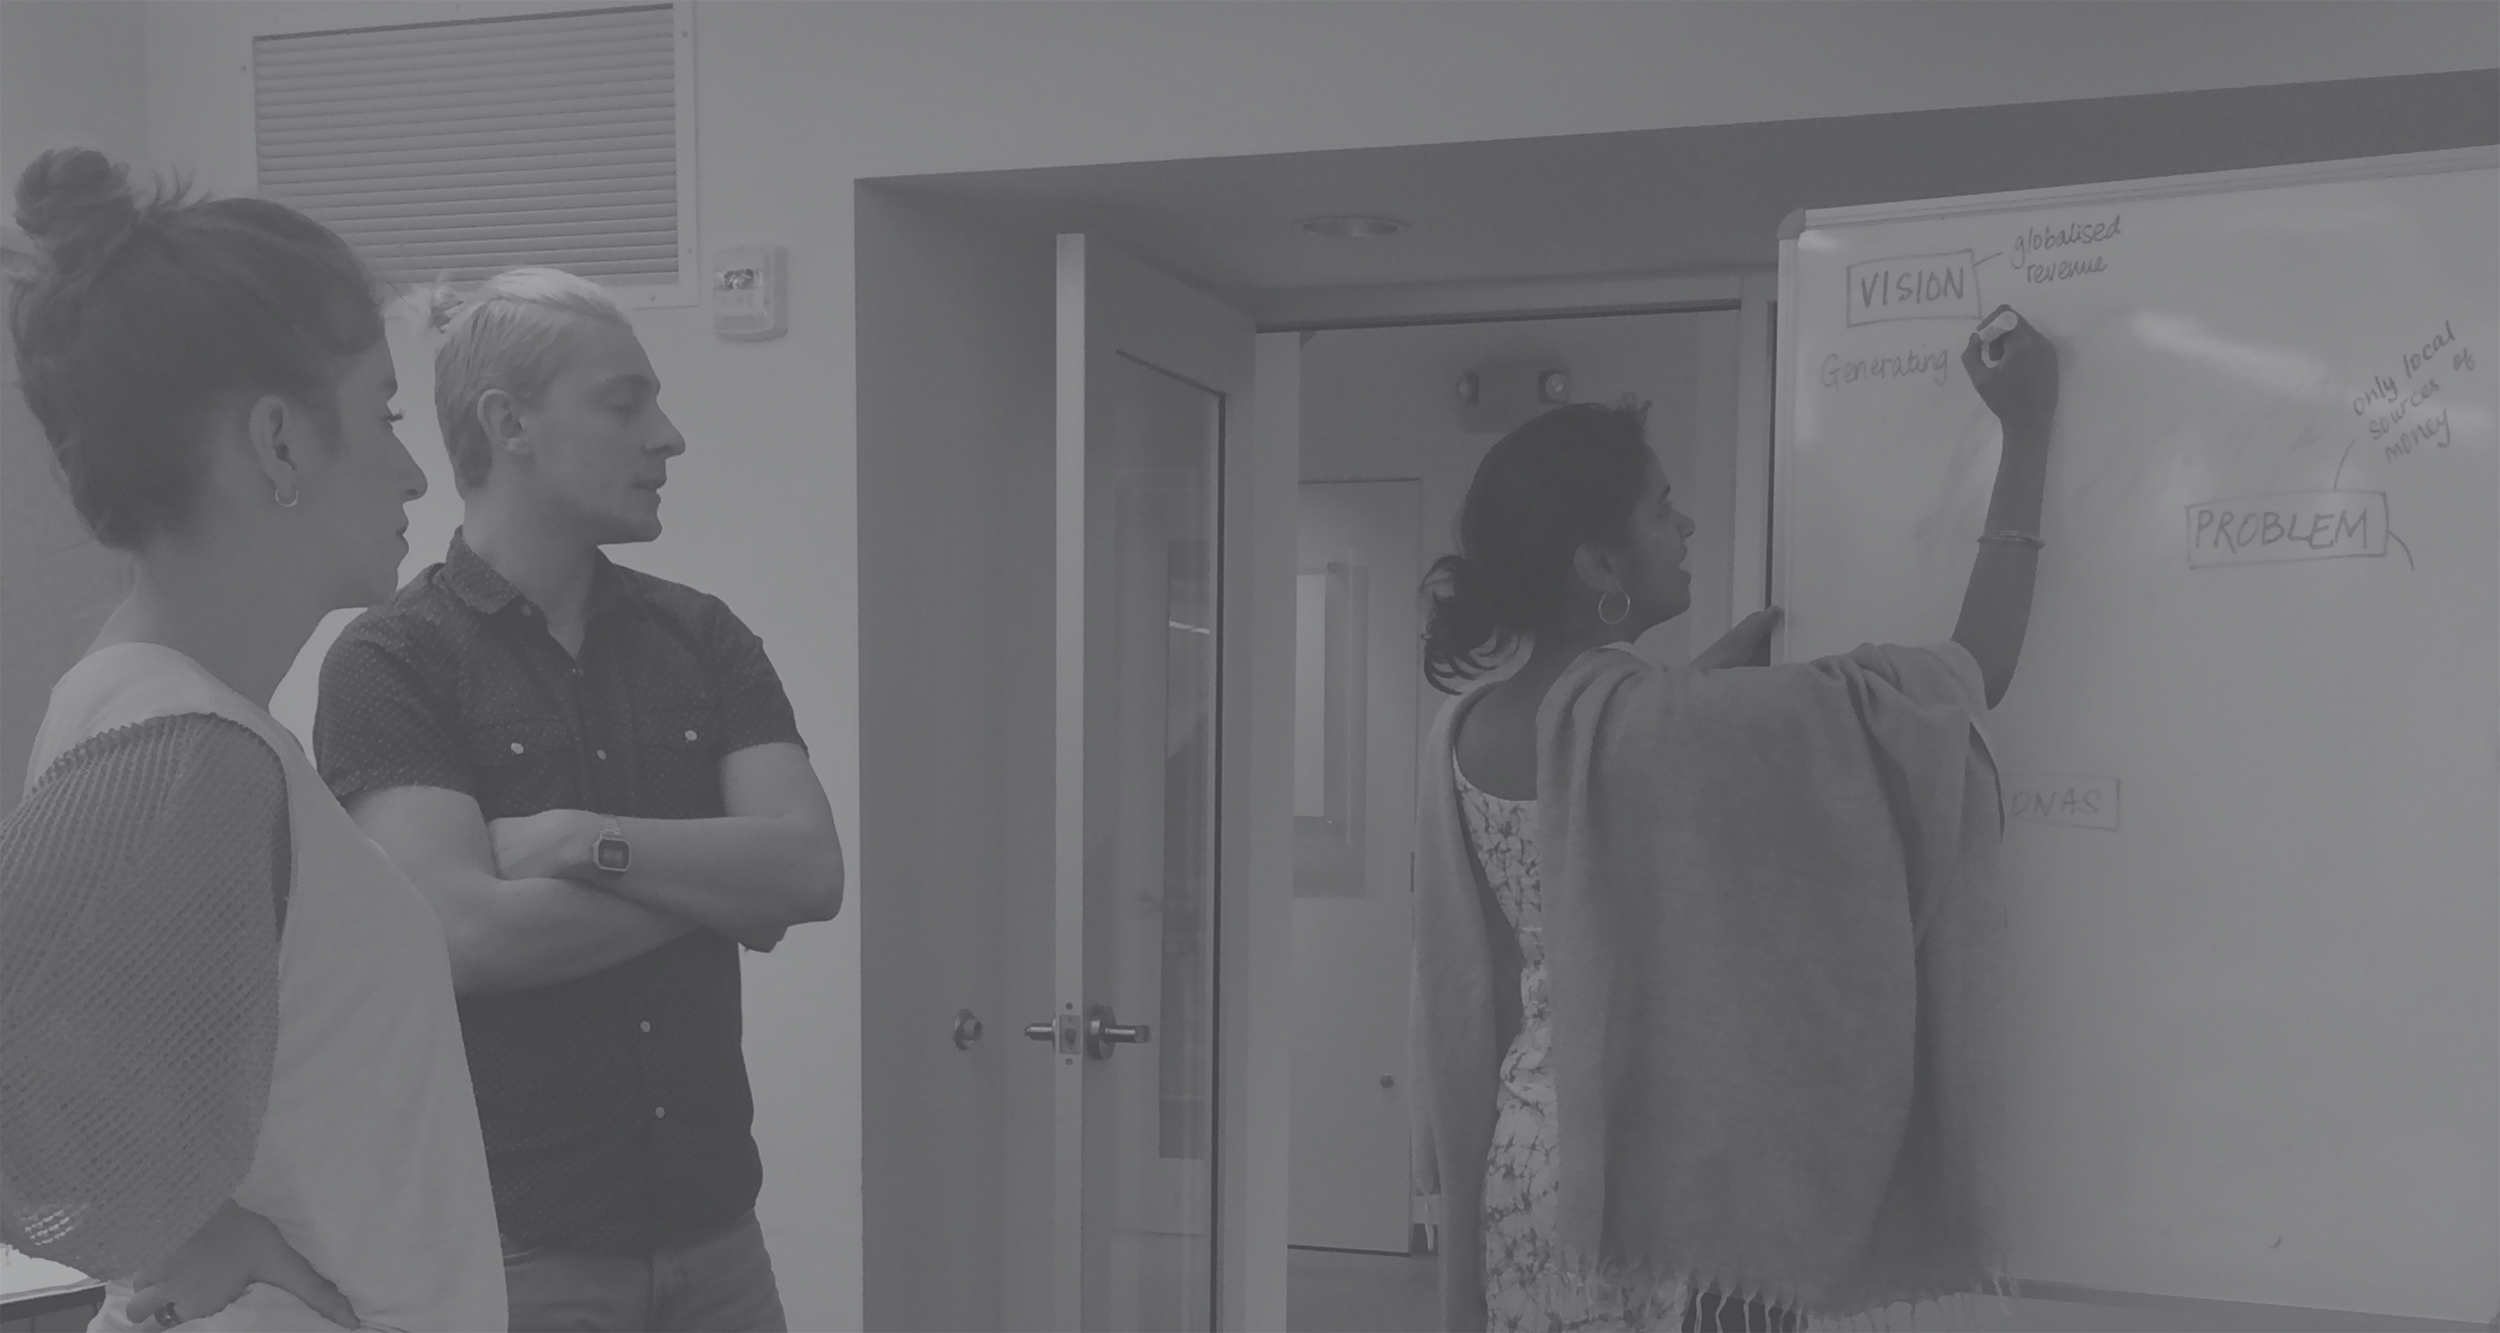 My role was primarily to identify personas, develop scenarios & their corresponding functional elements. We worked together to create wireframes, user tests, the identity and visual interface. -